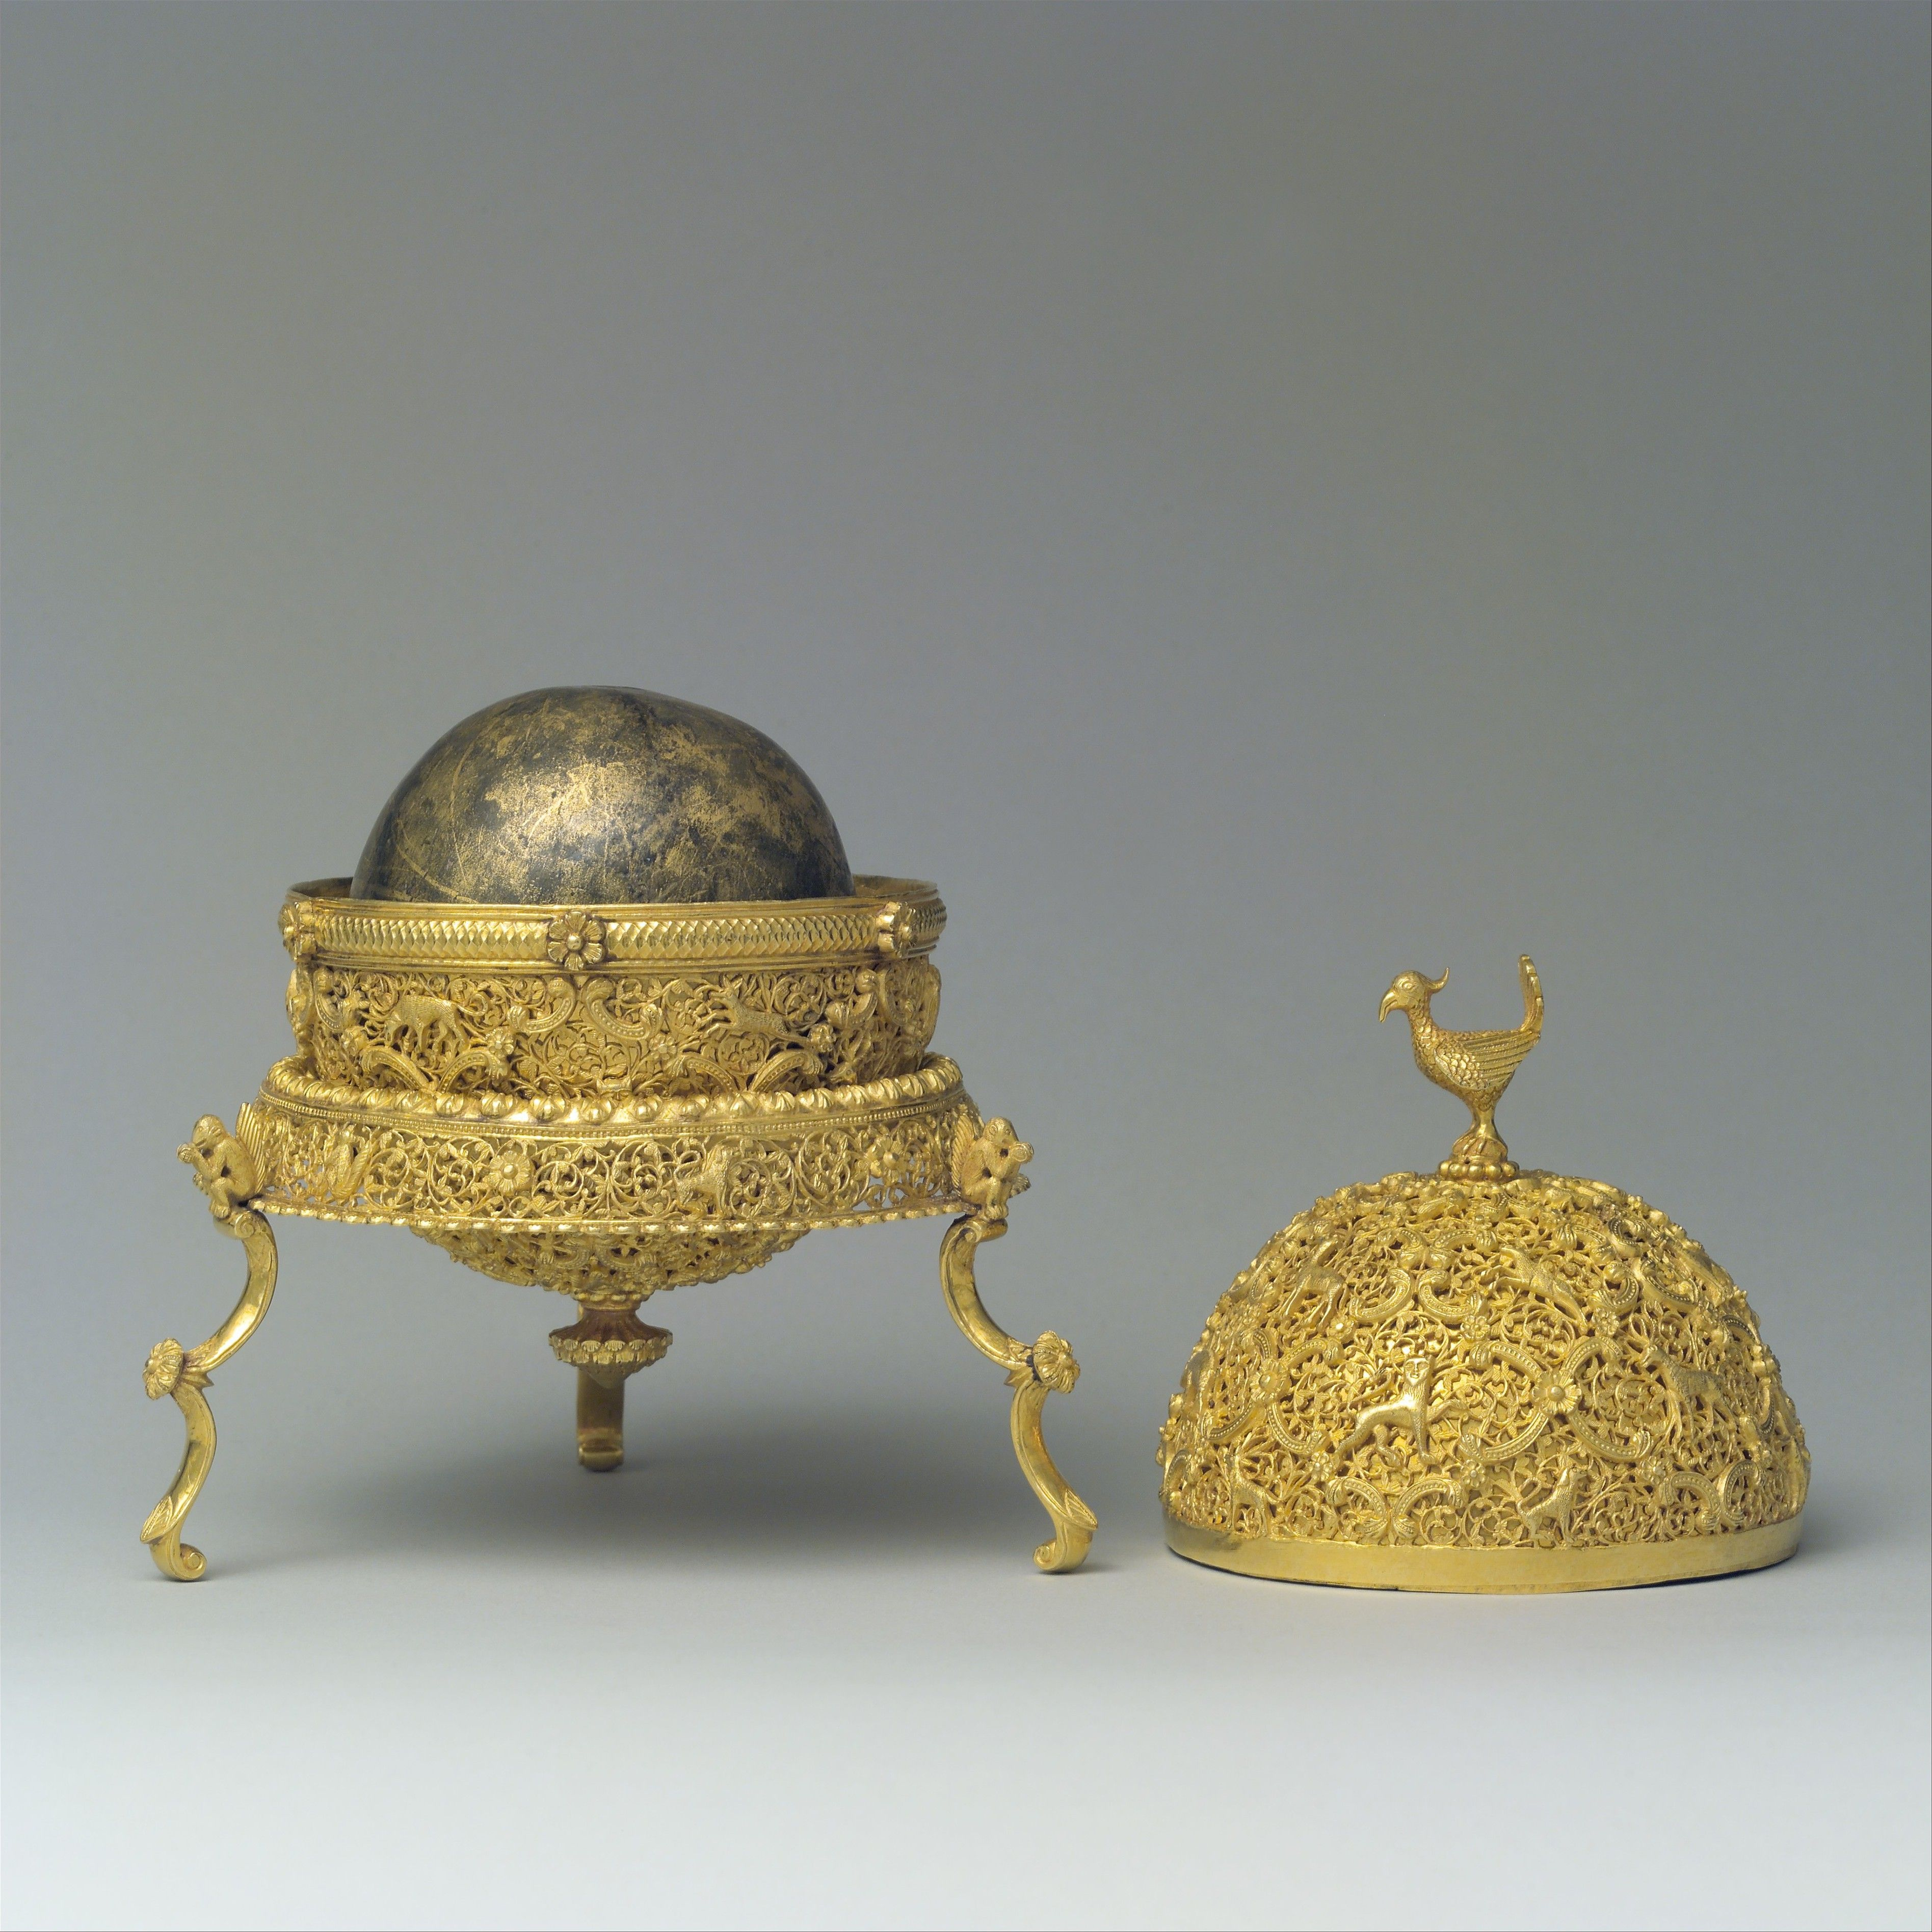 Goa Stone and Gold Case. Object Name: Goa stone and container. Date: late 17th–early 18th century. Geography: India, Goa. Medium: Container: gold; pierced, repoussé, with cast legs and finials Goa stone: compound of organic and inorganic materials.